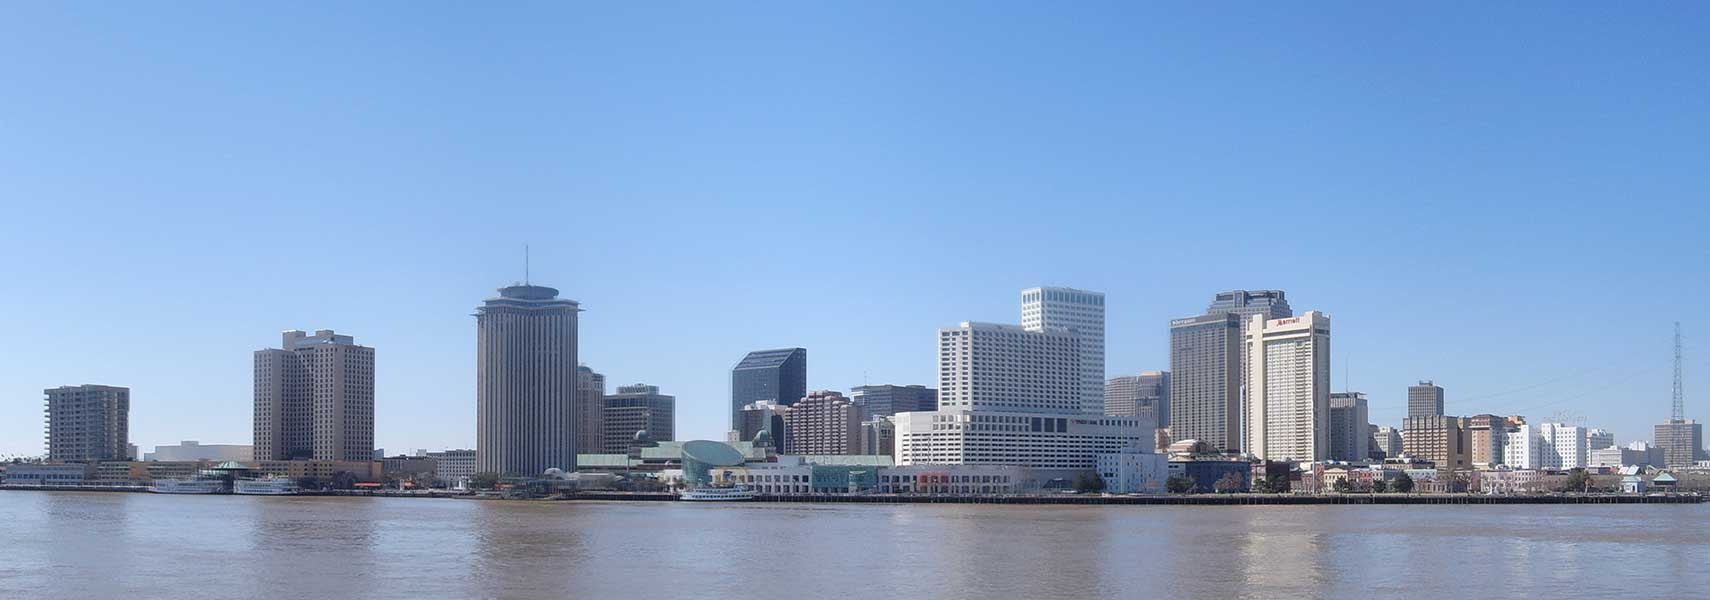 Google Map of New Orleans Louisiana USA Nations Online Project